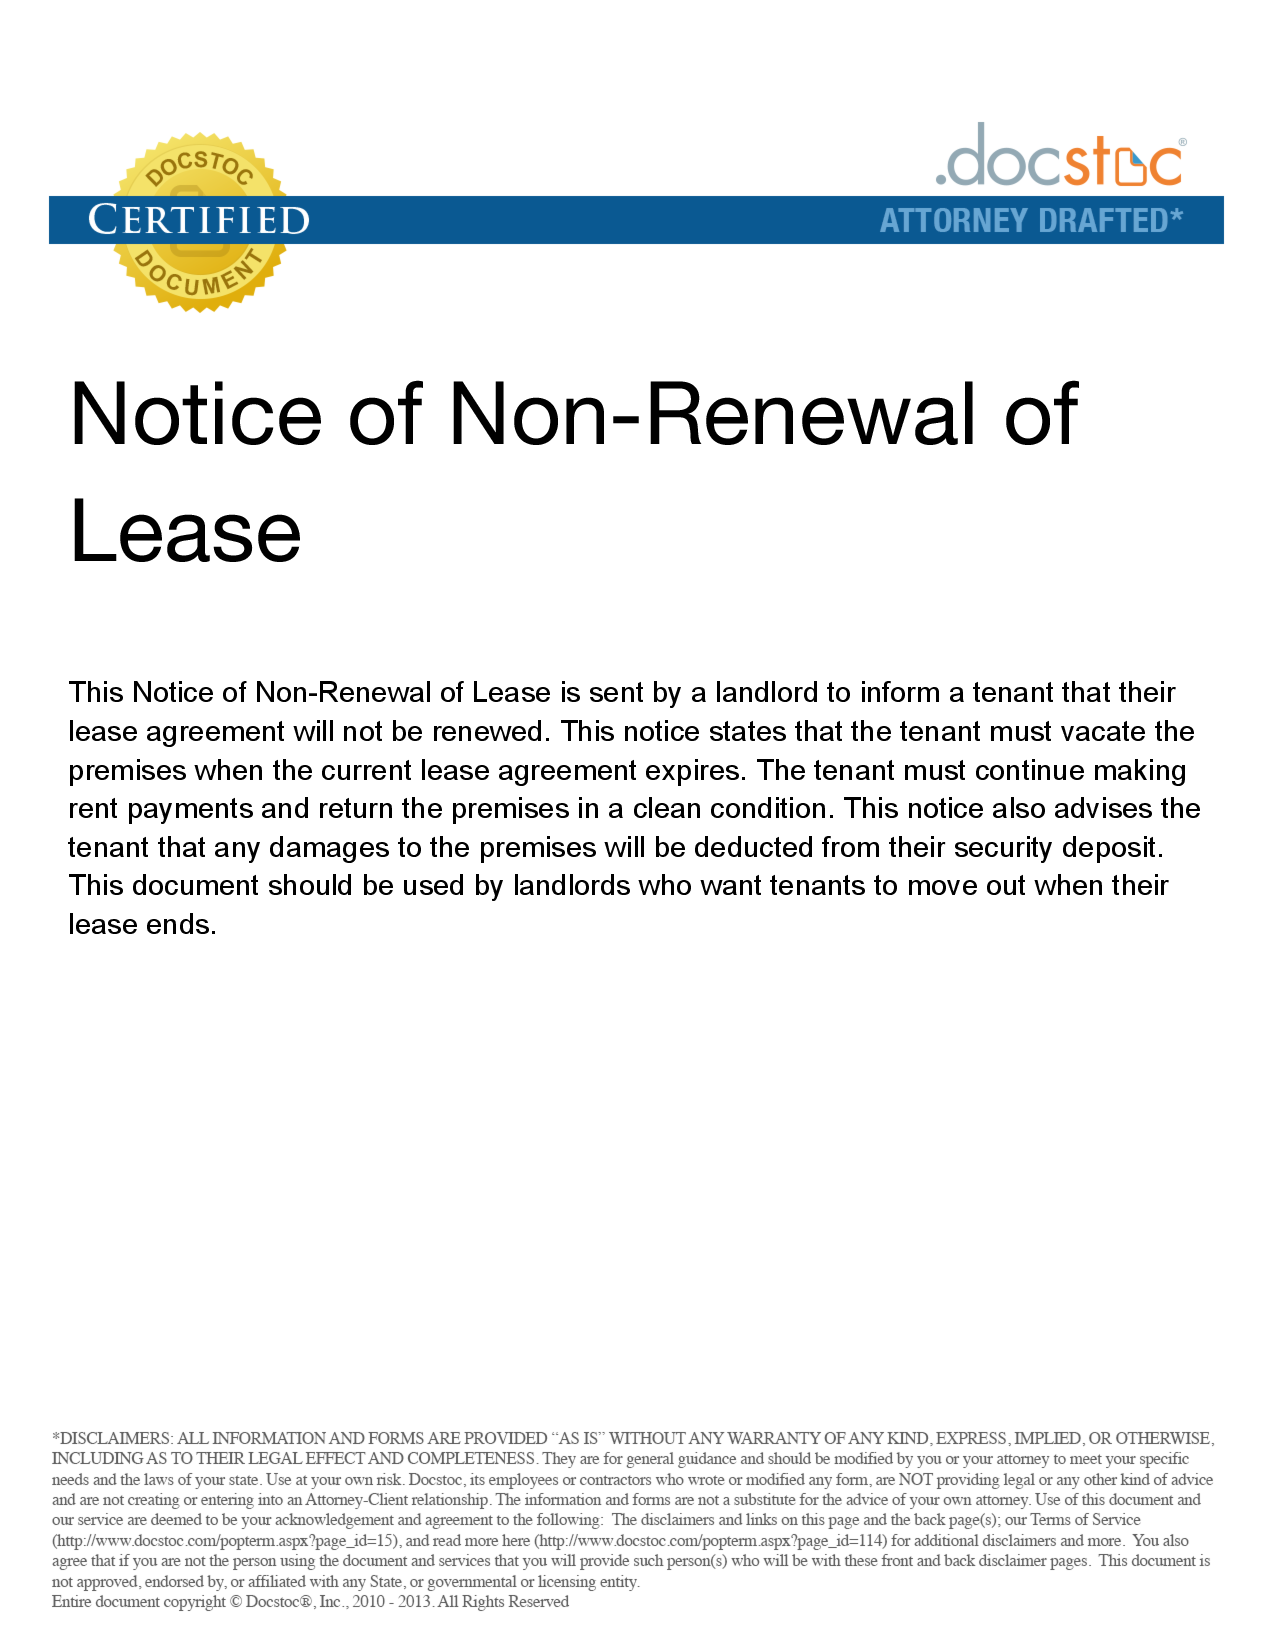 Pin by dimples dansol on legal documents pinterest nonrenewal of lease letter free printable documents spiritdancerdesigns Choice Image